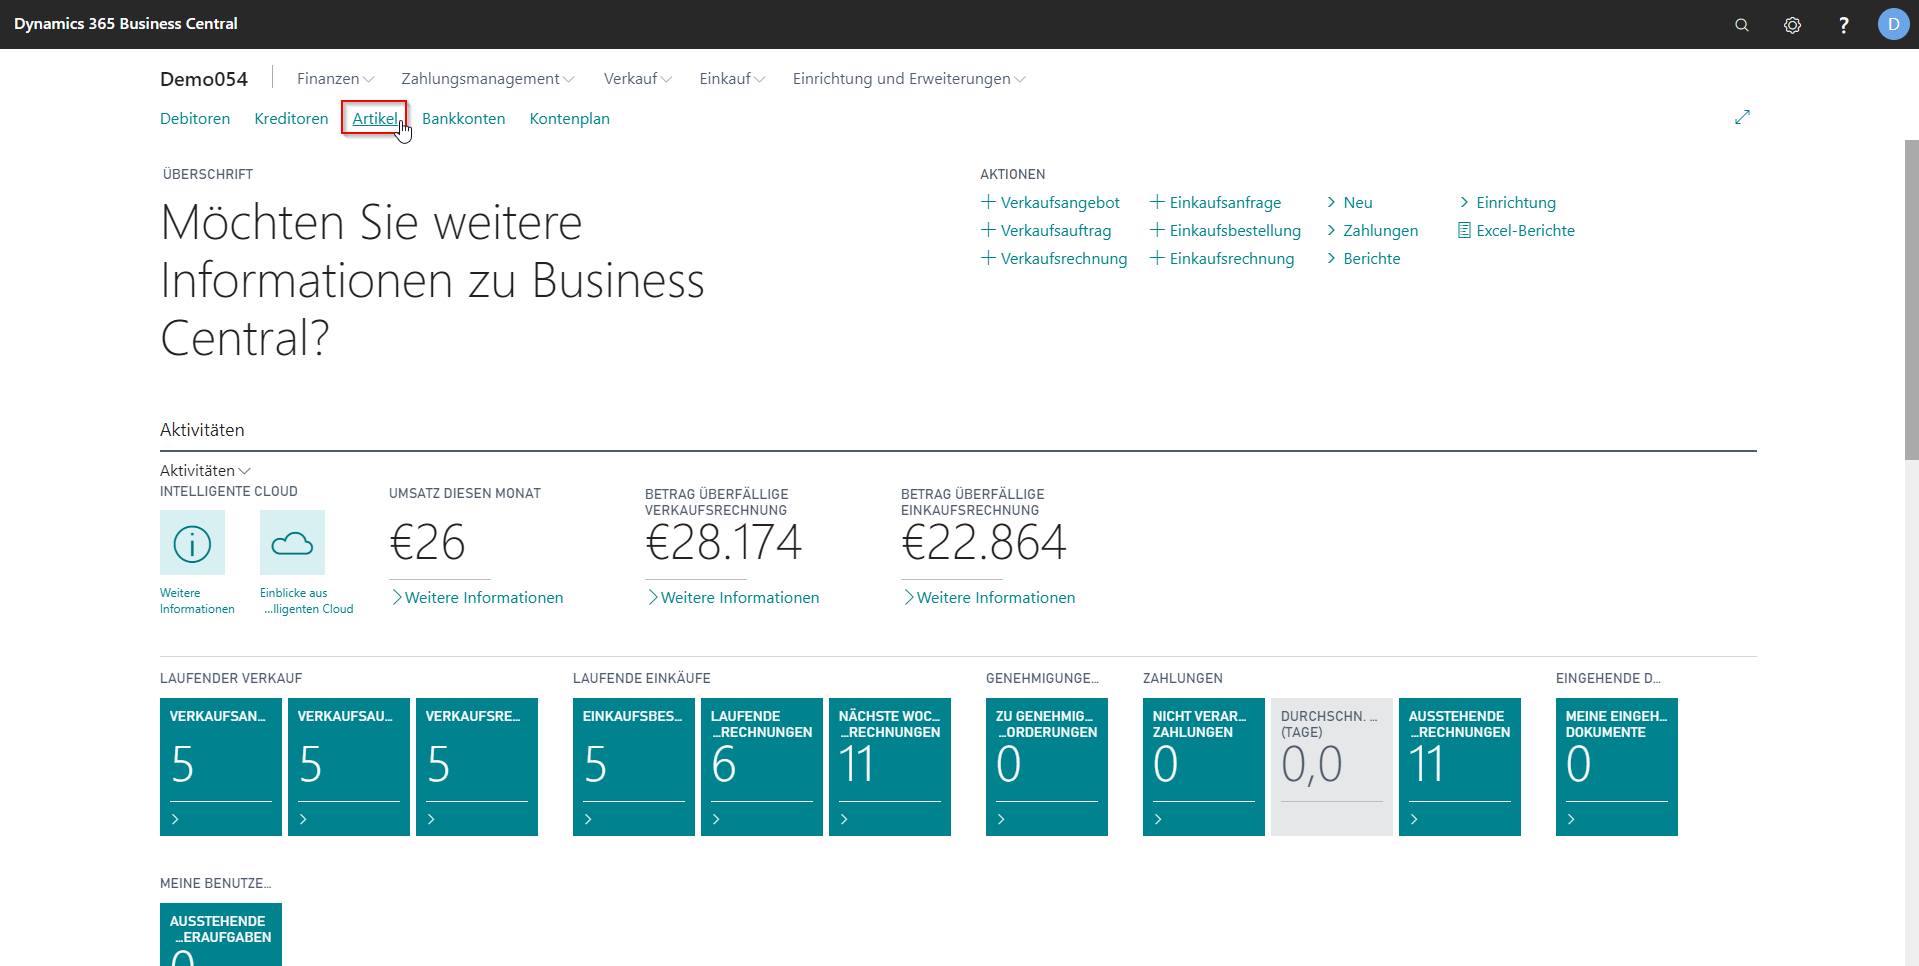 eCOUNT Dynamics 365 Business Central |  Artikel anlegen